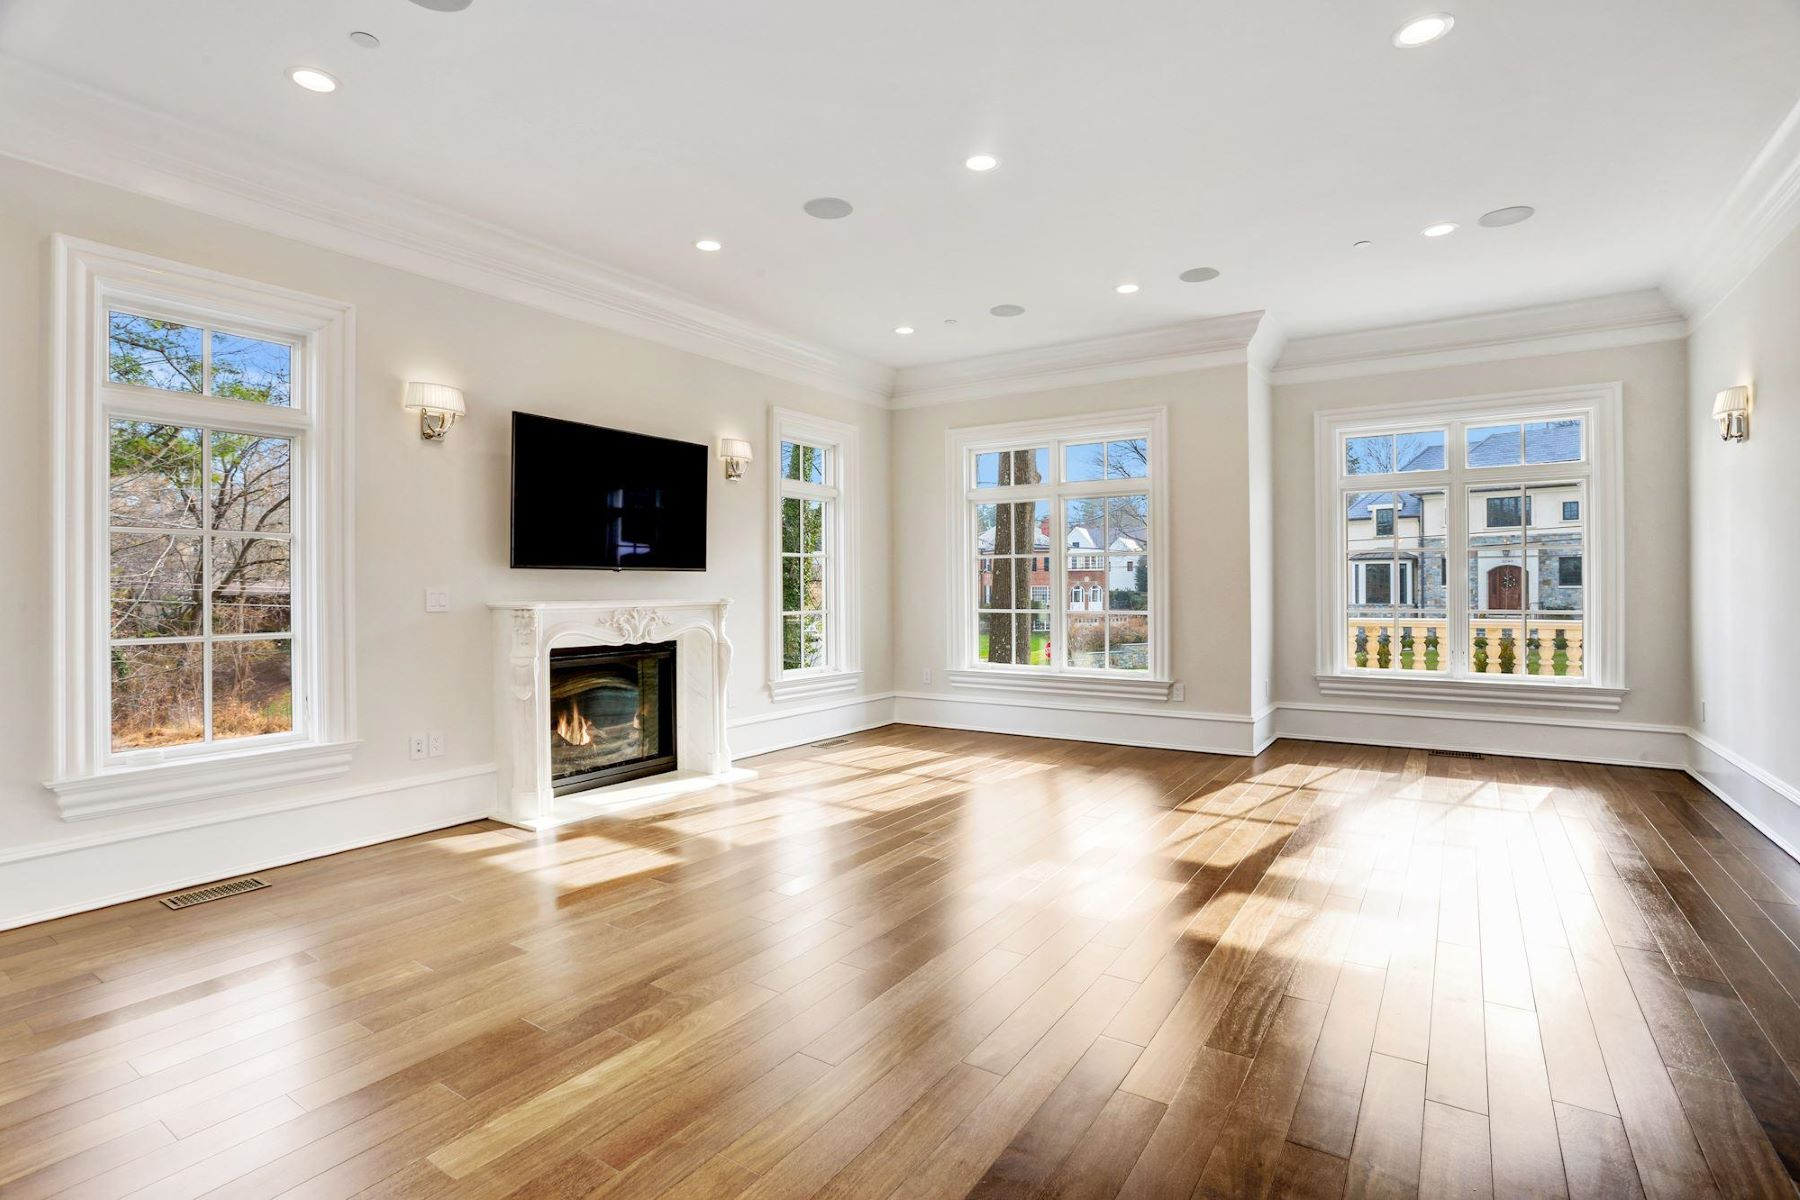 Additional photo for property listing at 3301 Fessenden St NW 3301 Fessenden St NW Washington, District Of Columbia 20008 United States